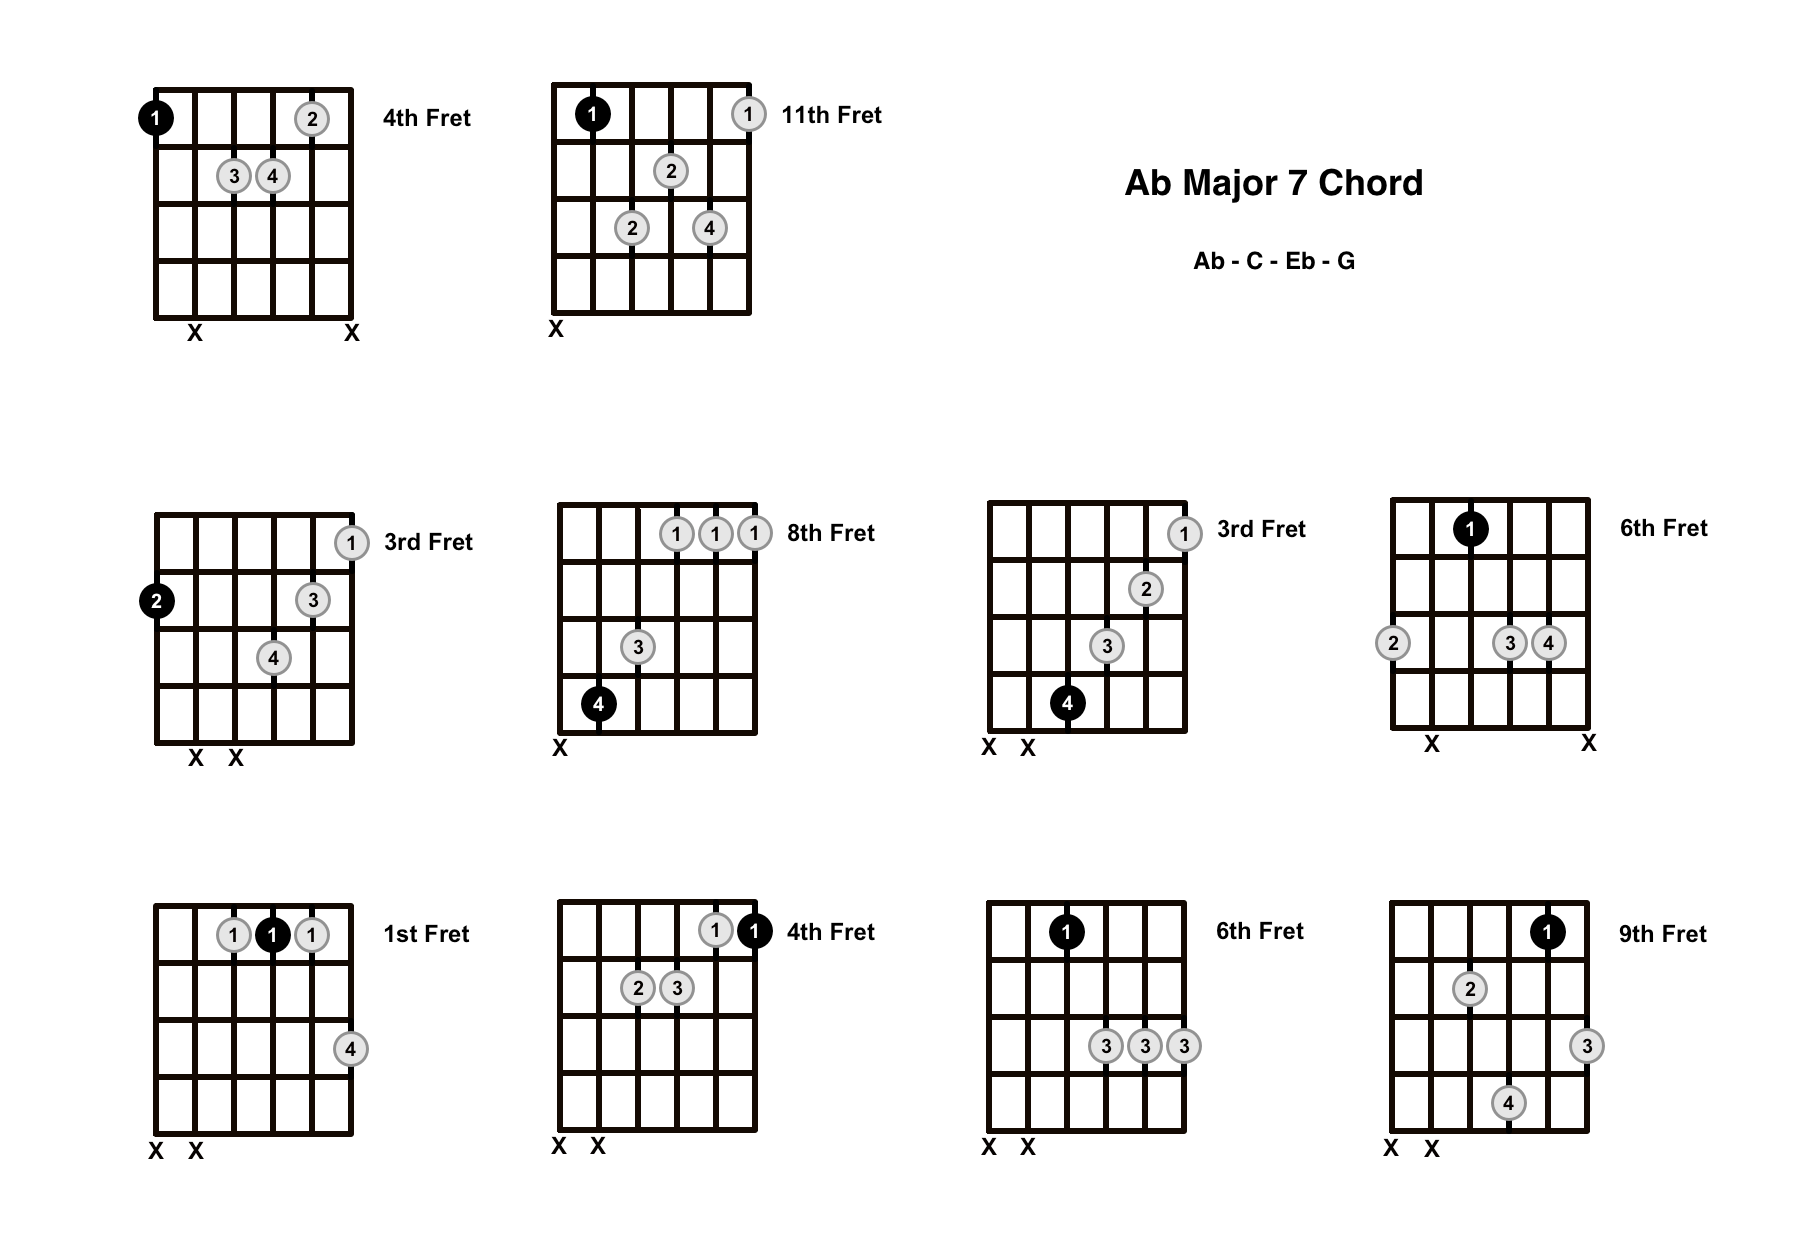 A Flat Major 7 Chord On The Guitar (Ab Maj 7) – Diagrams, Finger Positions and Theory